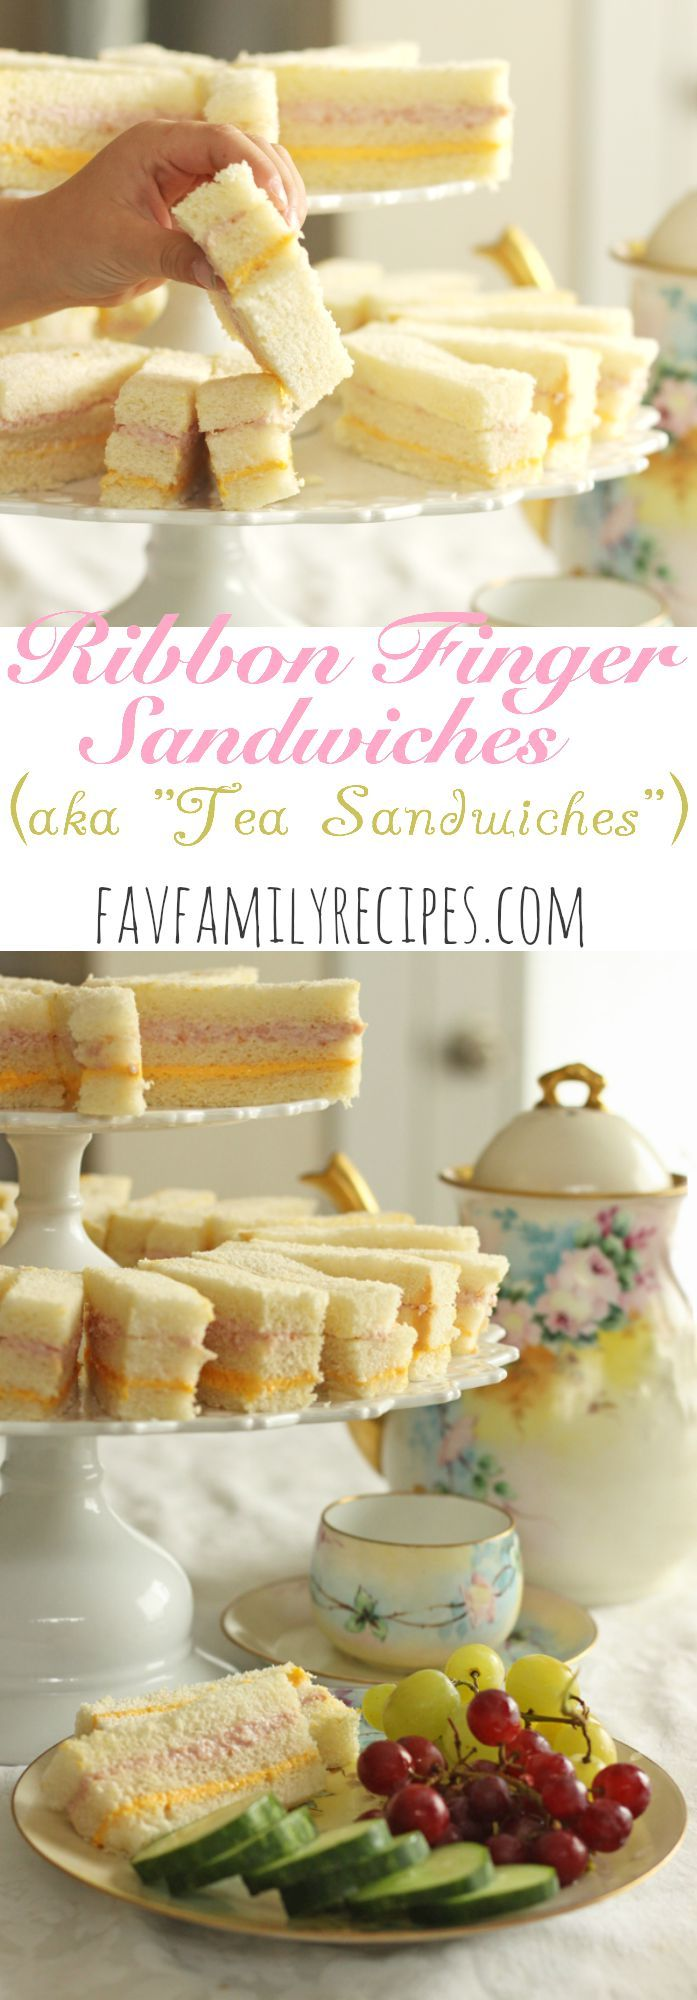 "These ribbon finger sandwiches (aka ""Tea Sandwiches"") are perfect for baby/bridal showers, receptions, tea parties, luncheons, or birthday parties. So easy to make and tasty too! Find all our yummy pins at https://www.pinterest.com/favfamilyrecipz/"